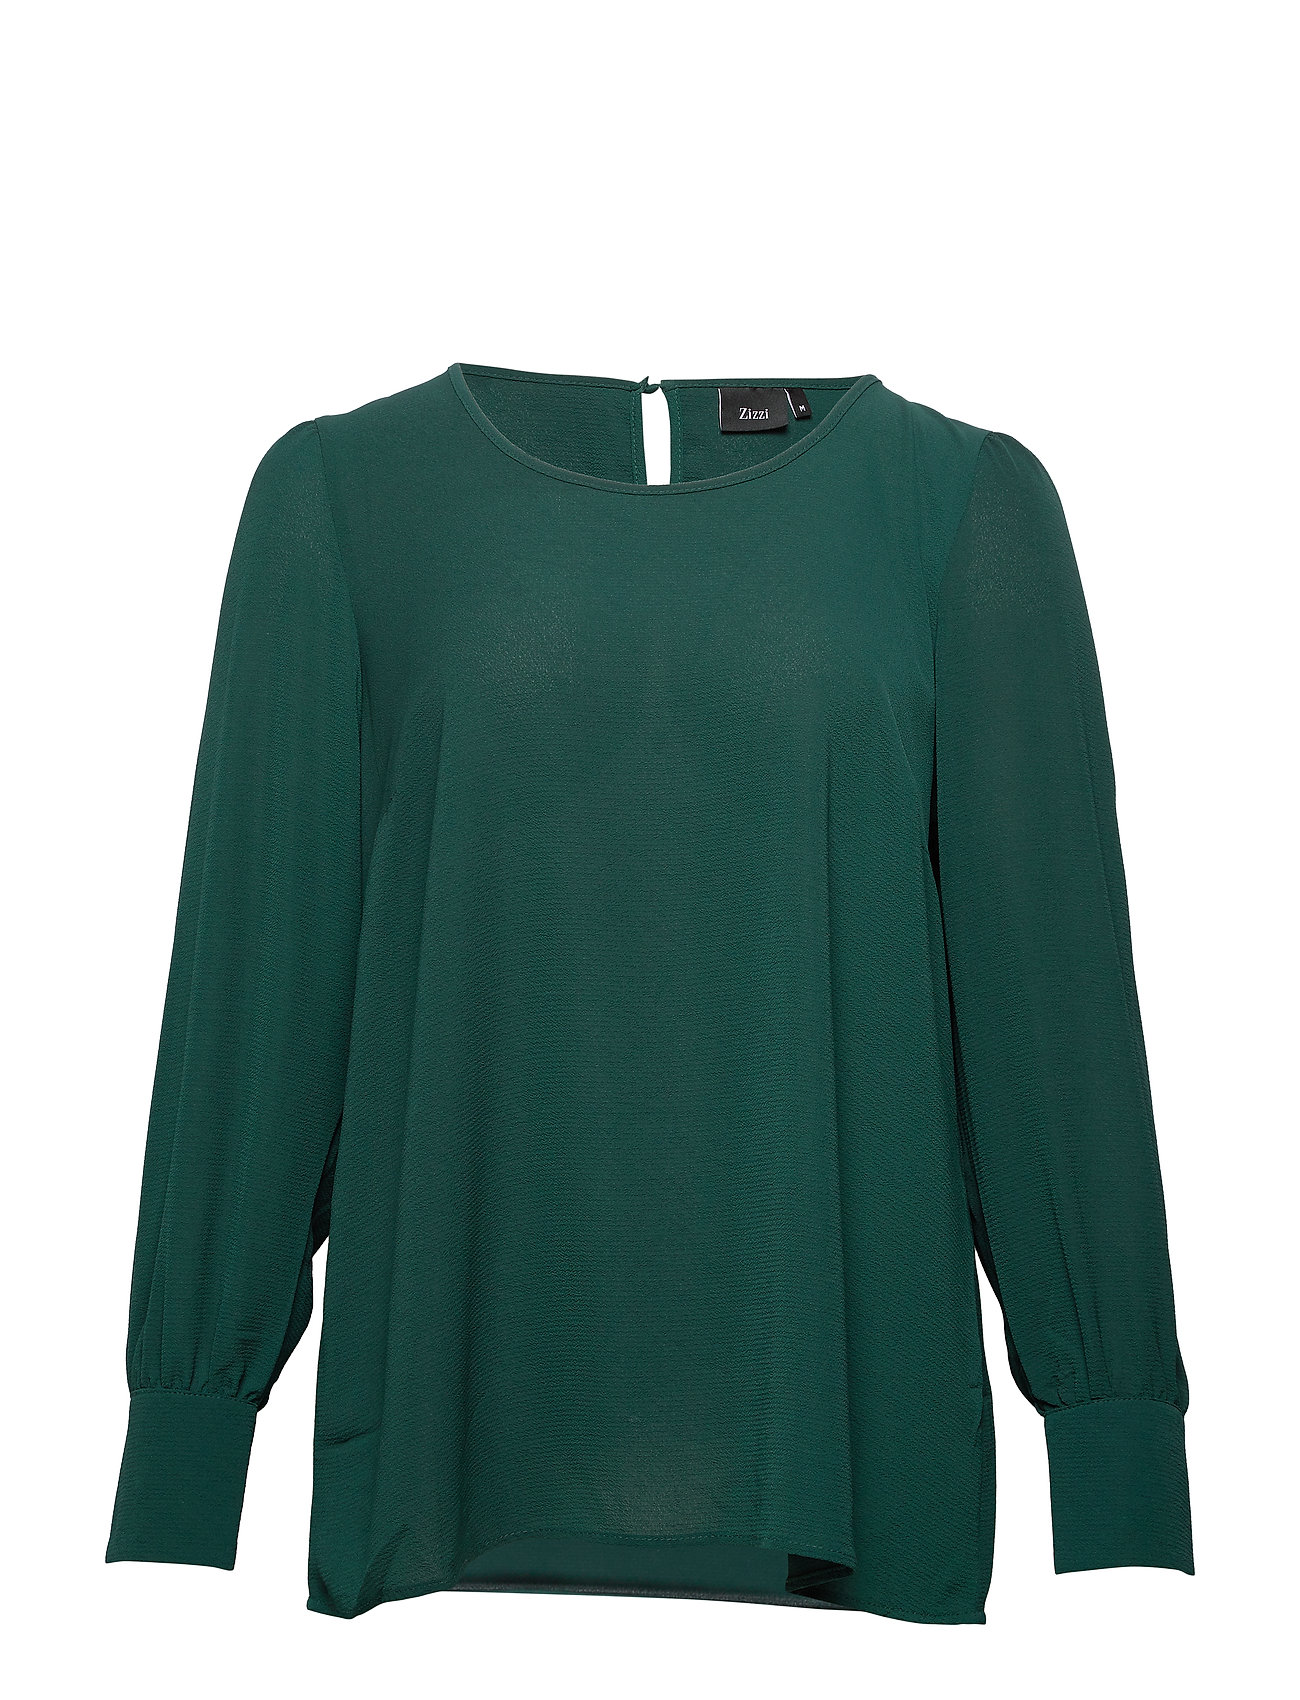 Zizzi MPHILIA, L/S, BLOUSE - DARK GREEN